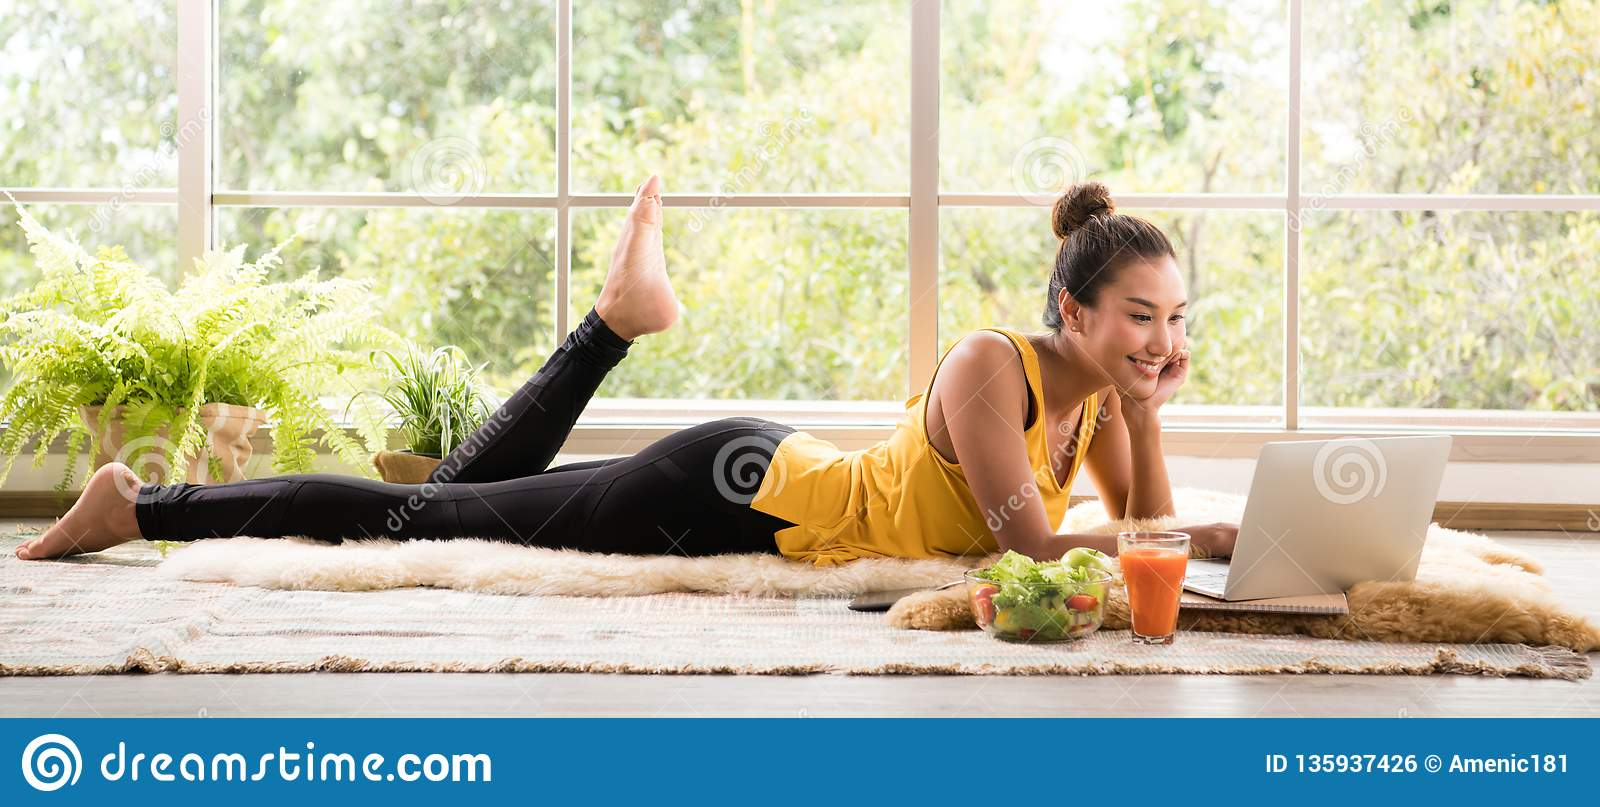 Healthy Asian woman lying on the floor eating salad and looking at laptop computer